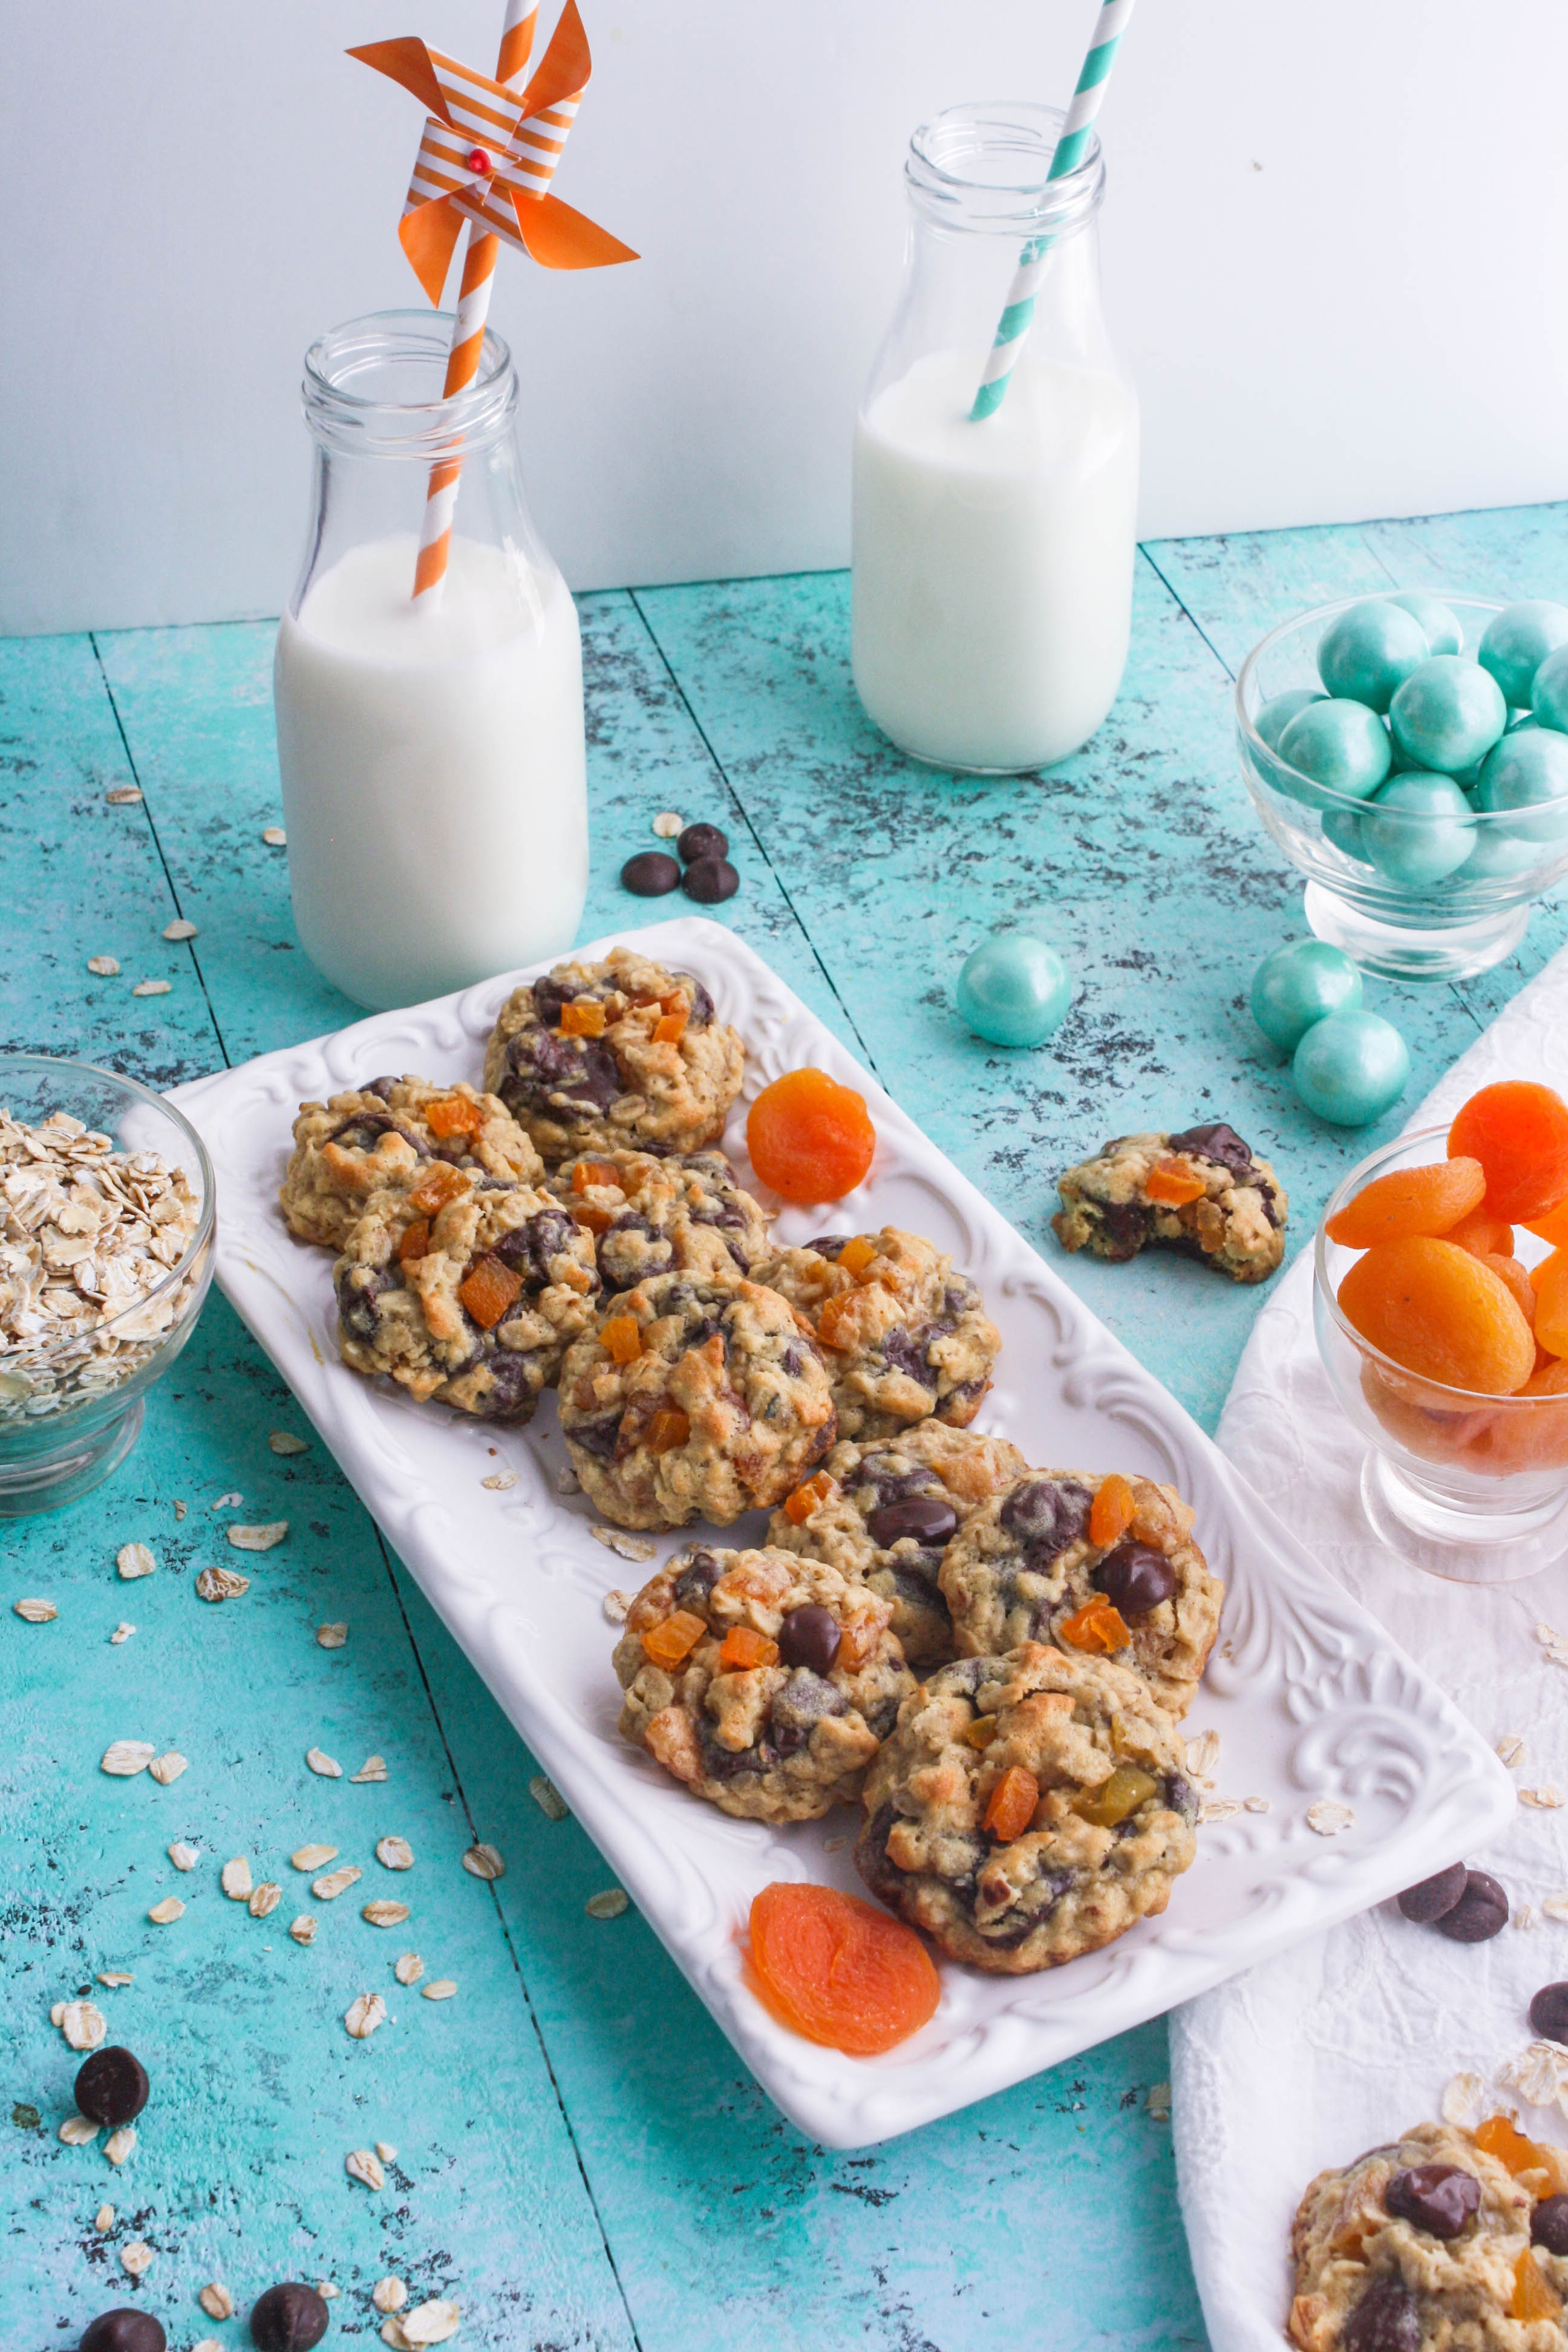 Dark Chocolate Apricot Oatmeal Cookies are great paired with a glass of milk! You'll enjoy Dark Chocolate Apricot Oatmeal Cookies with milk, coffee, or anything, really!